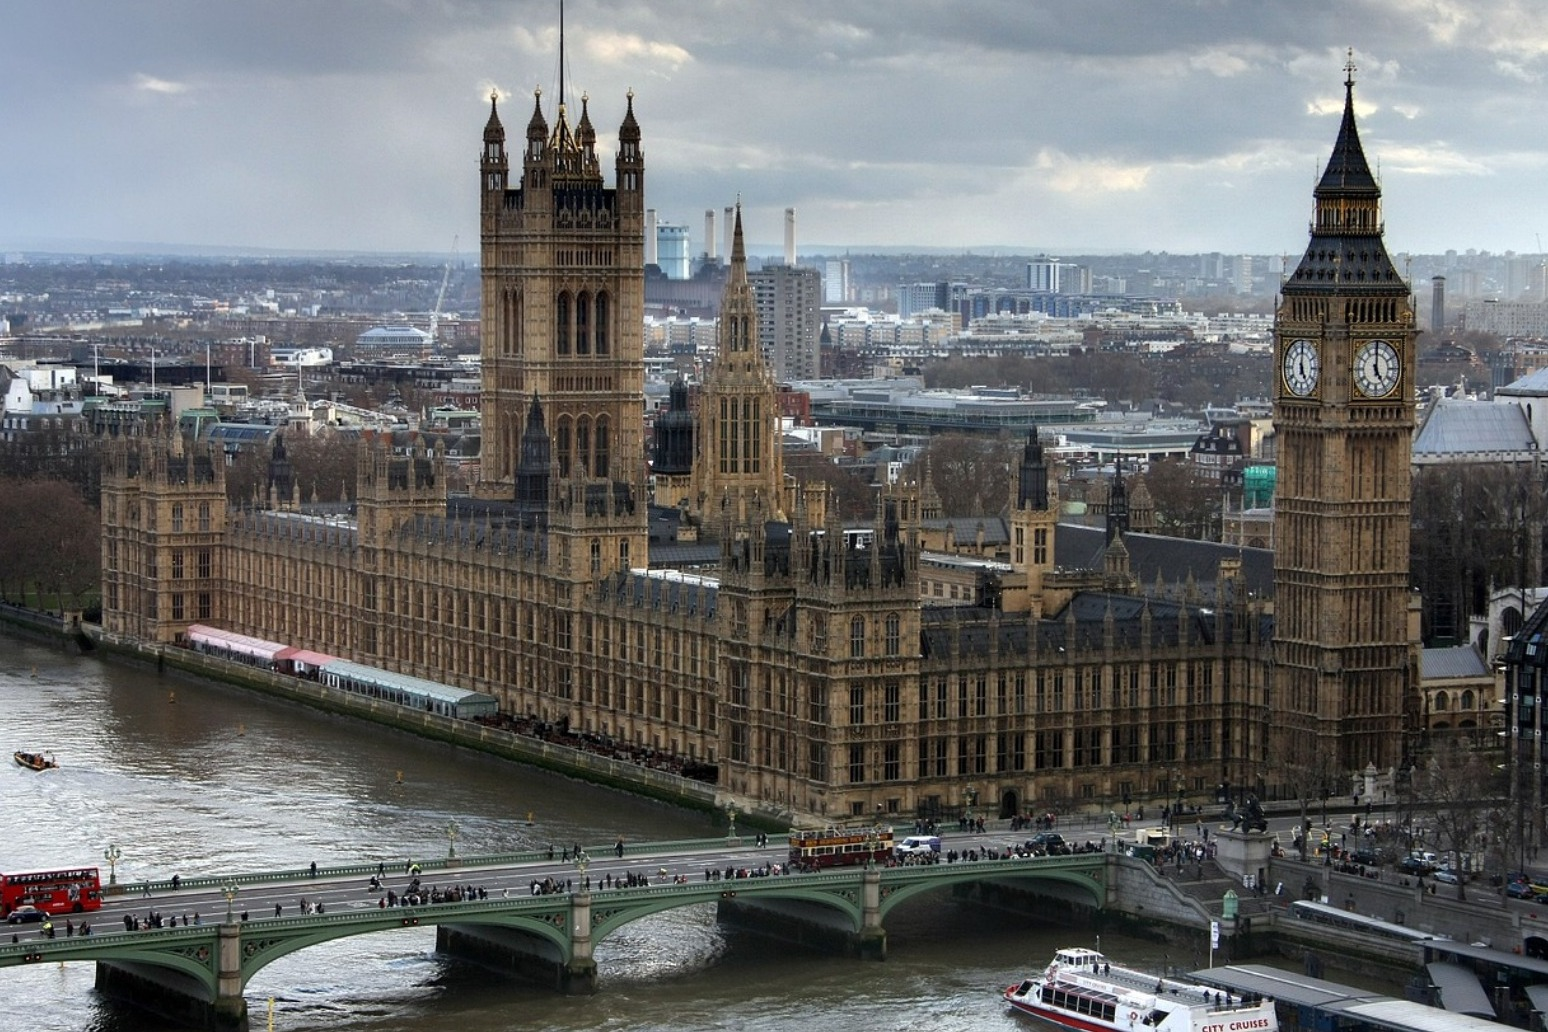 UK to implement plans for no-deal Brexit